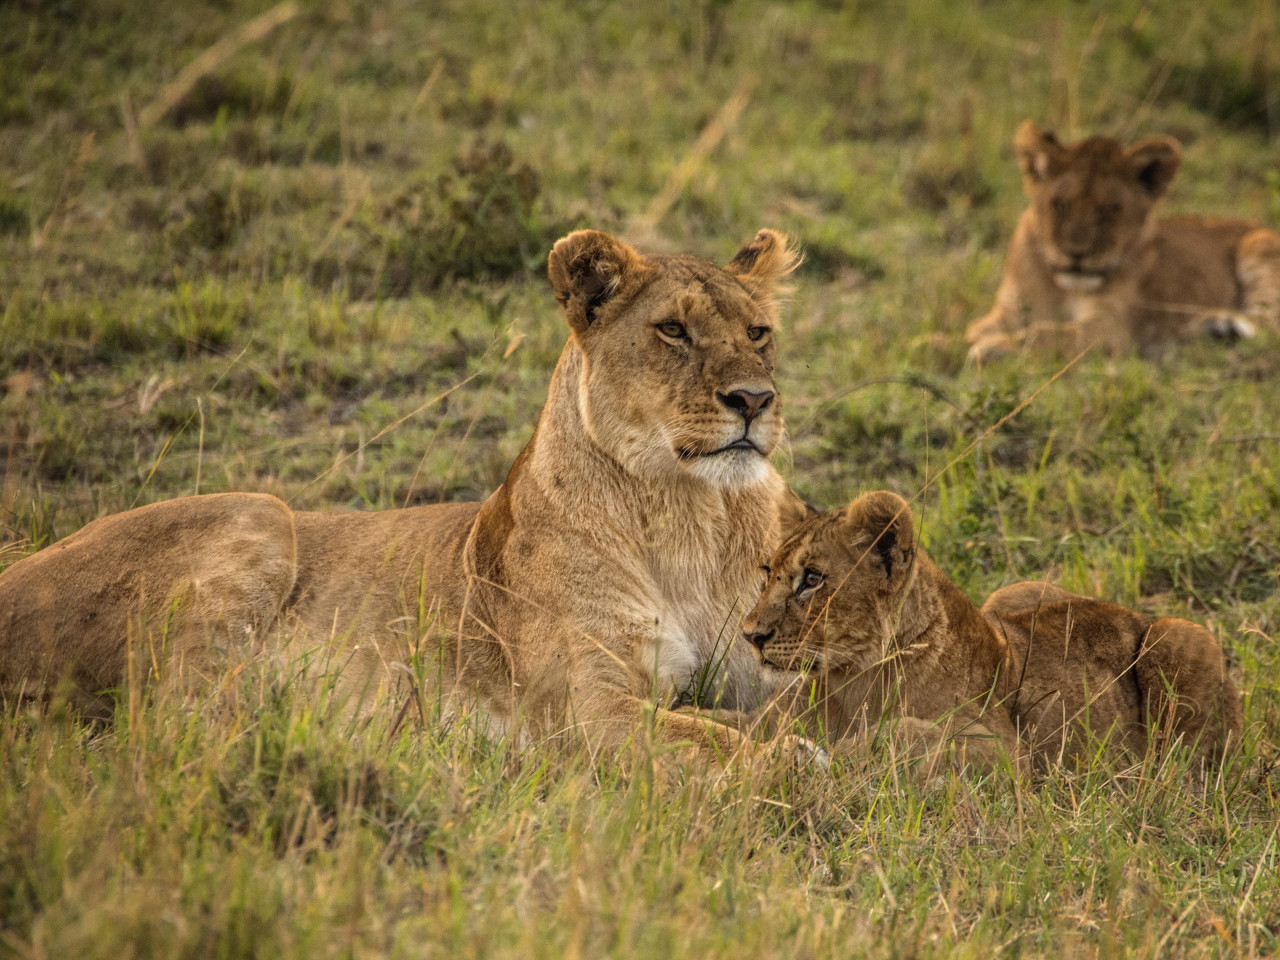 Lioness with cubs from Serengeti wallpaper 1280x960